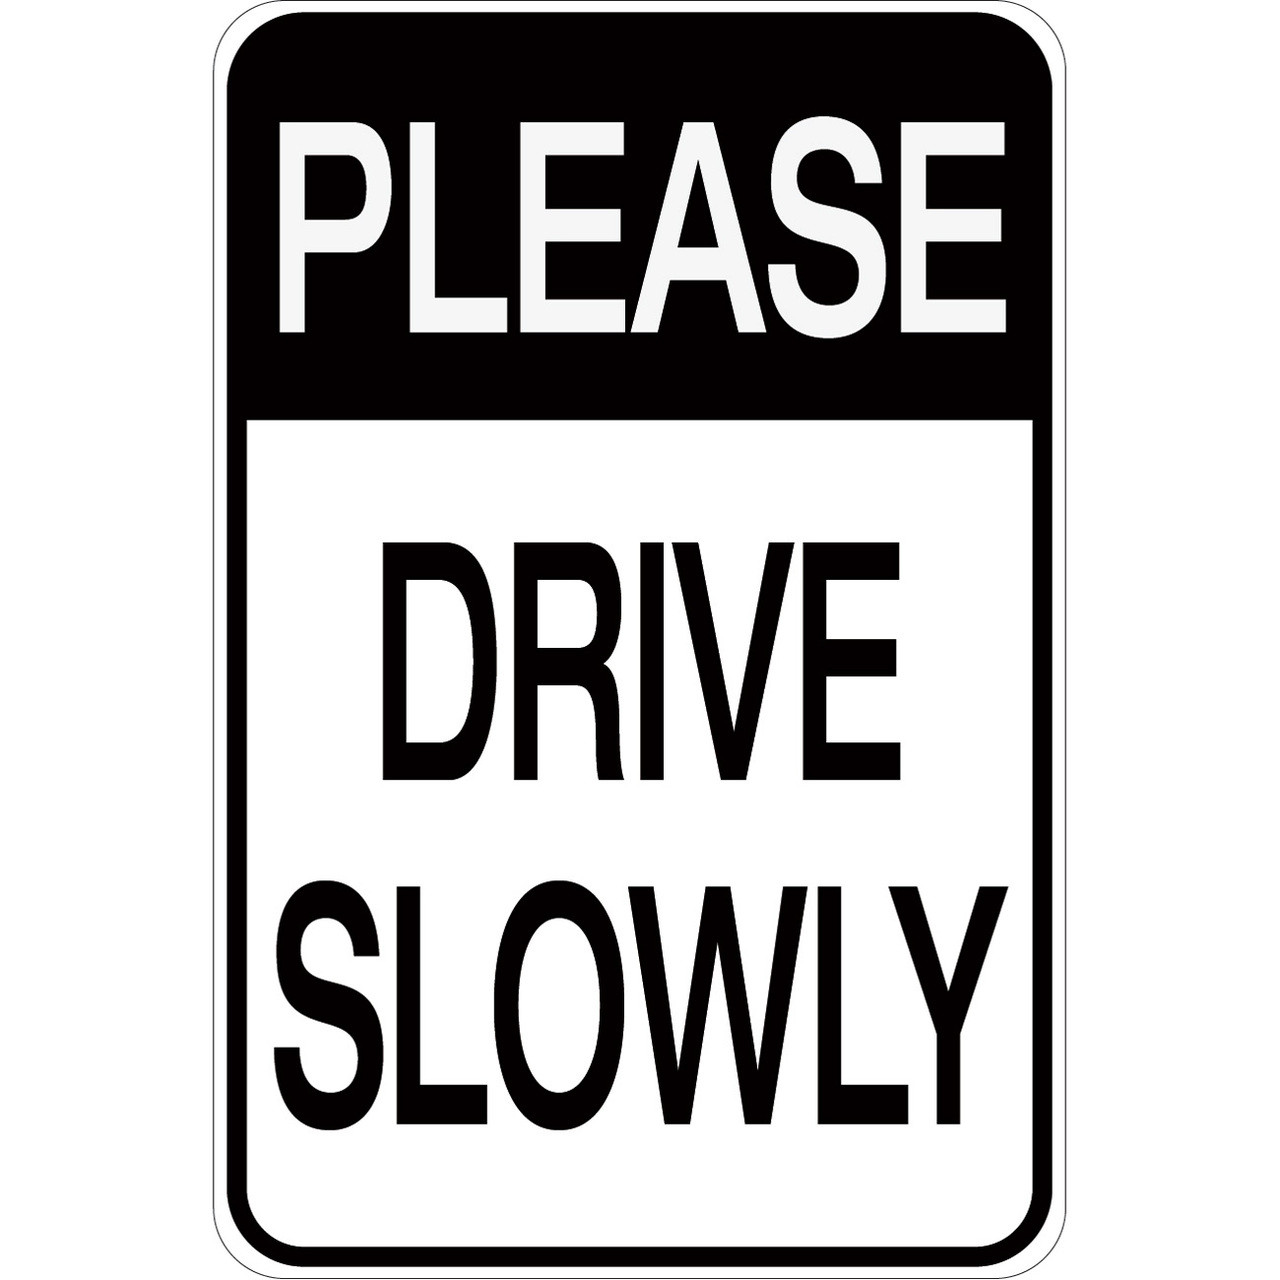 Please Drive Slowly Aluminum Sign Creative Safety Supply